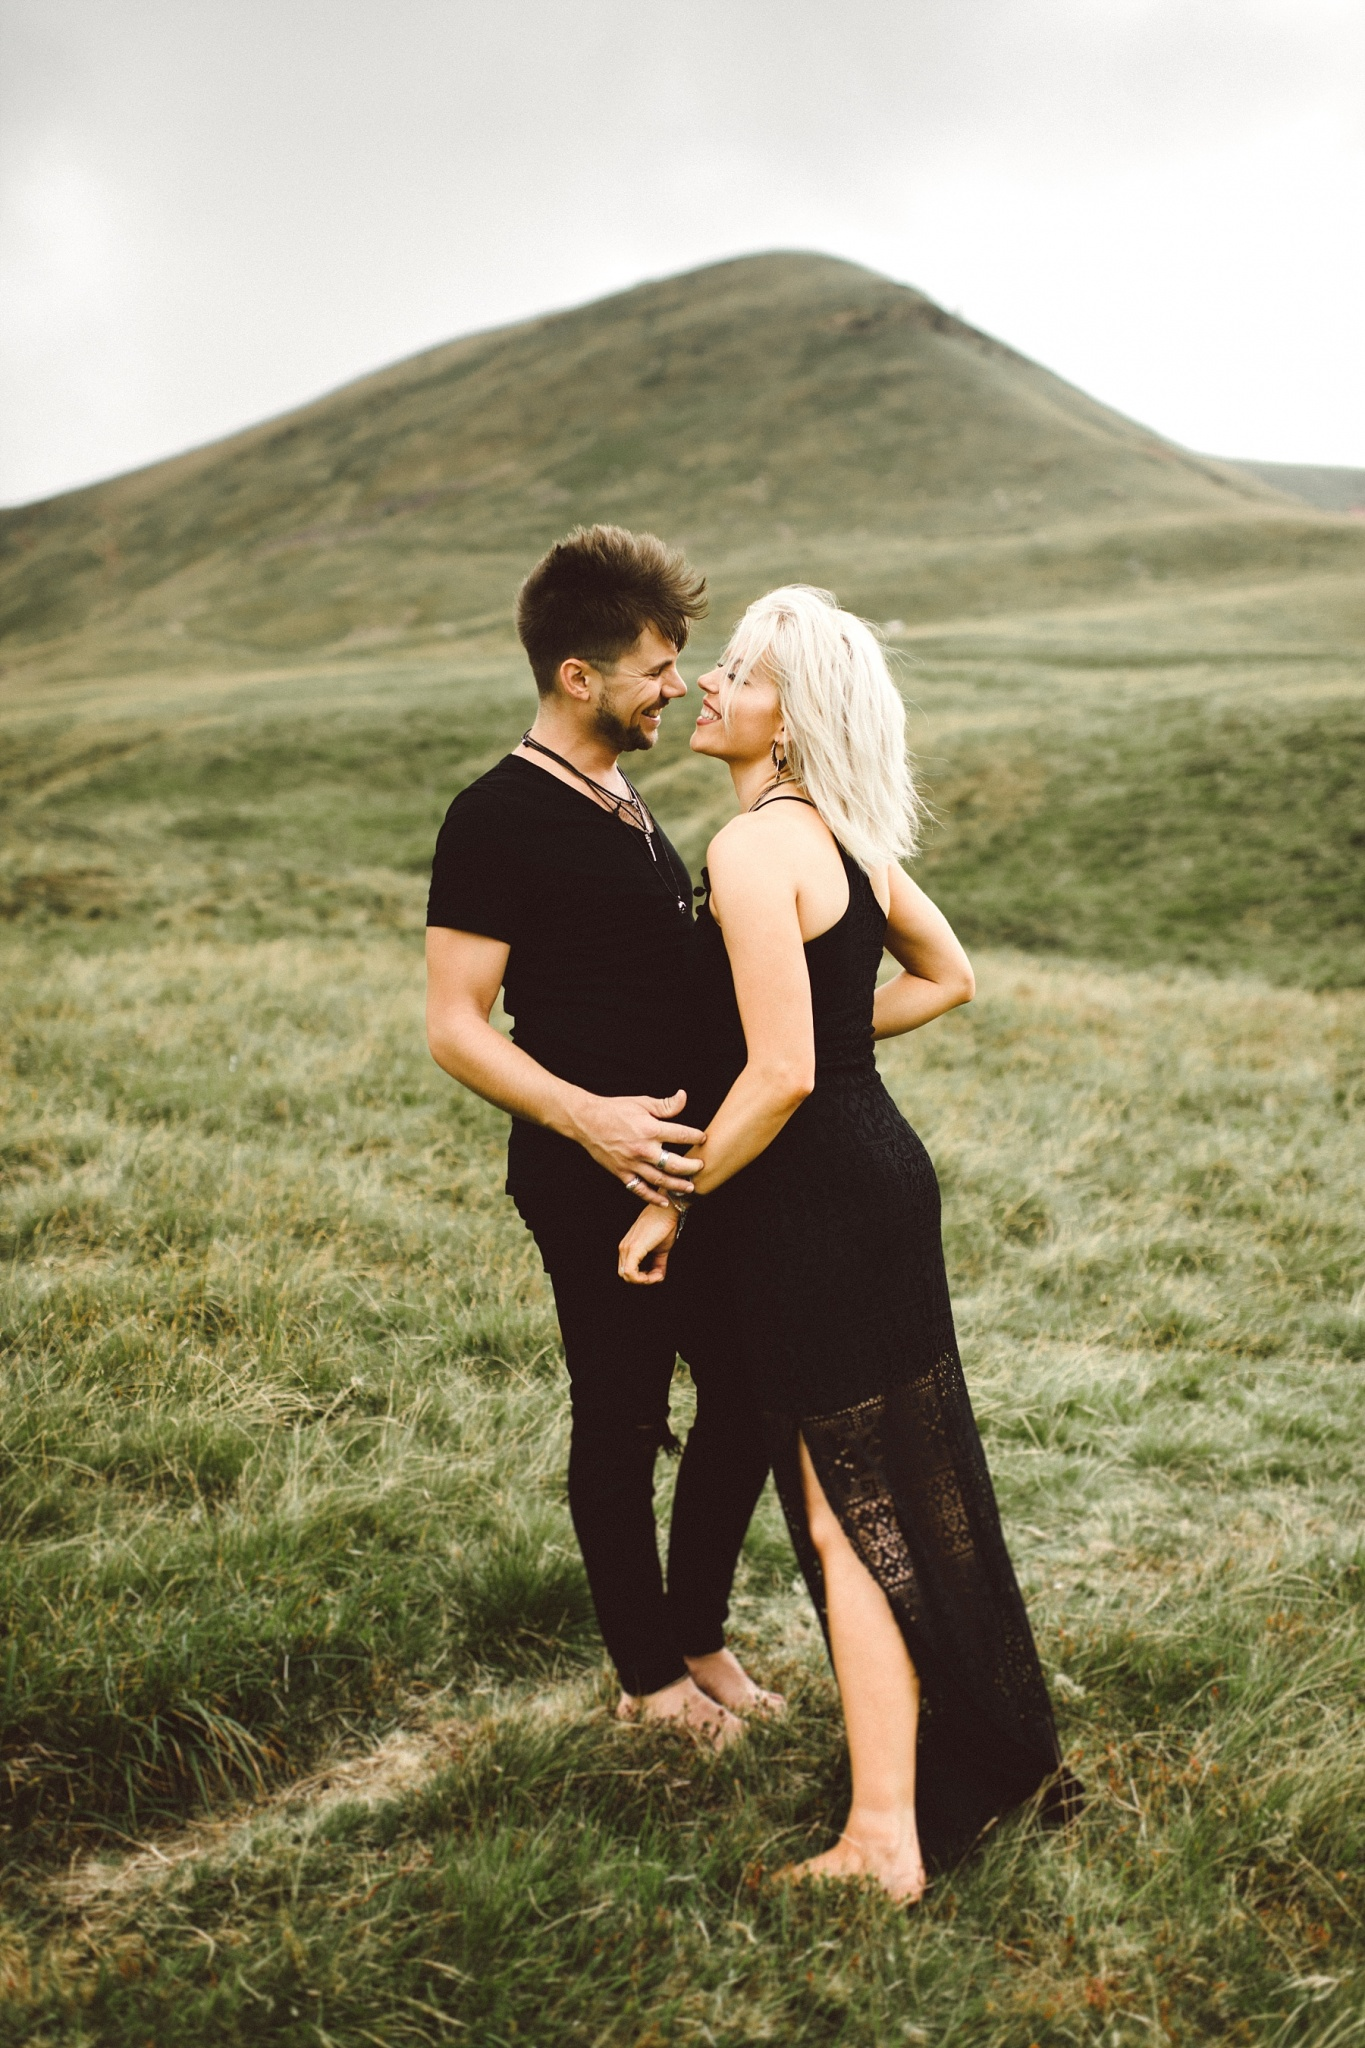 What to wear on an engagement shoot